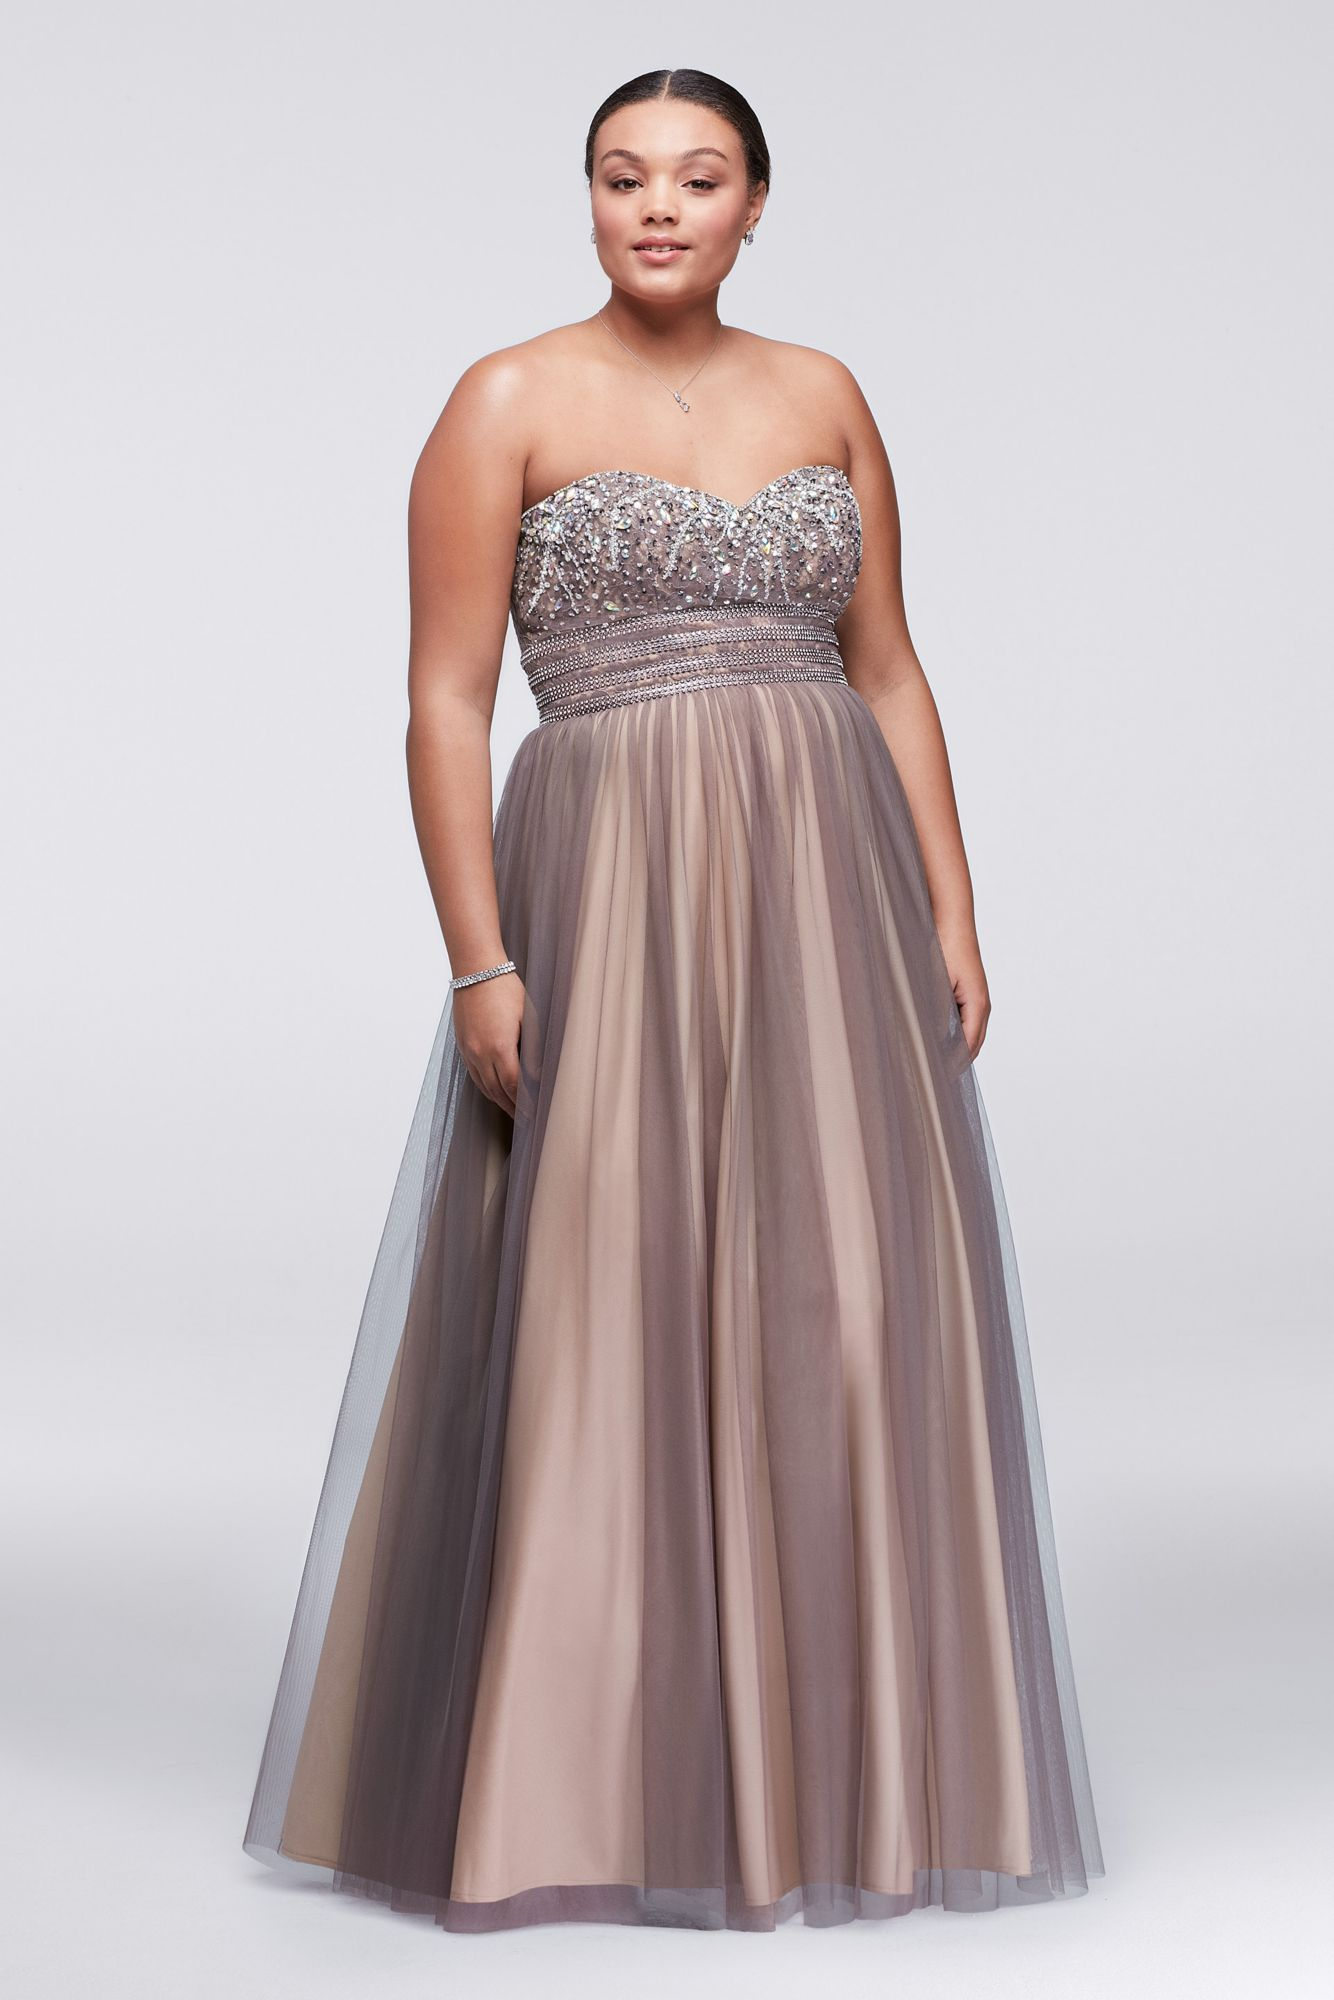 Halter top wedding dresses plus size  Plus Size Lace Up Floor Length Aline Ball Gown for Prom W